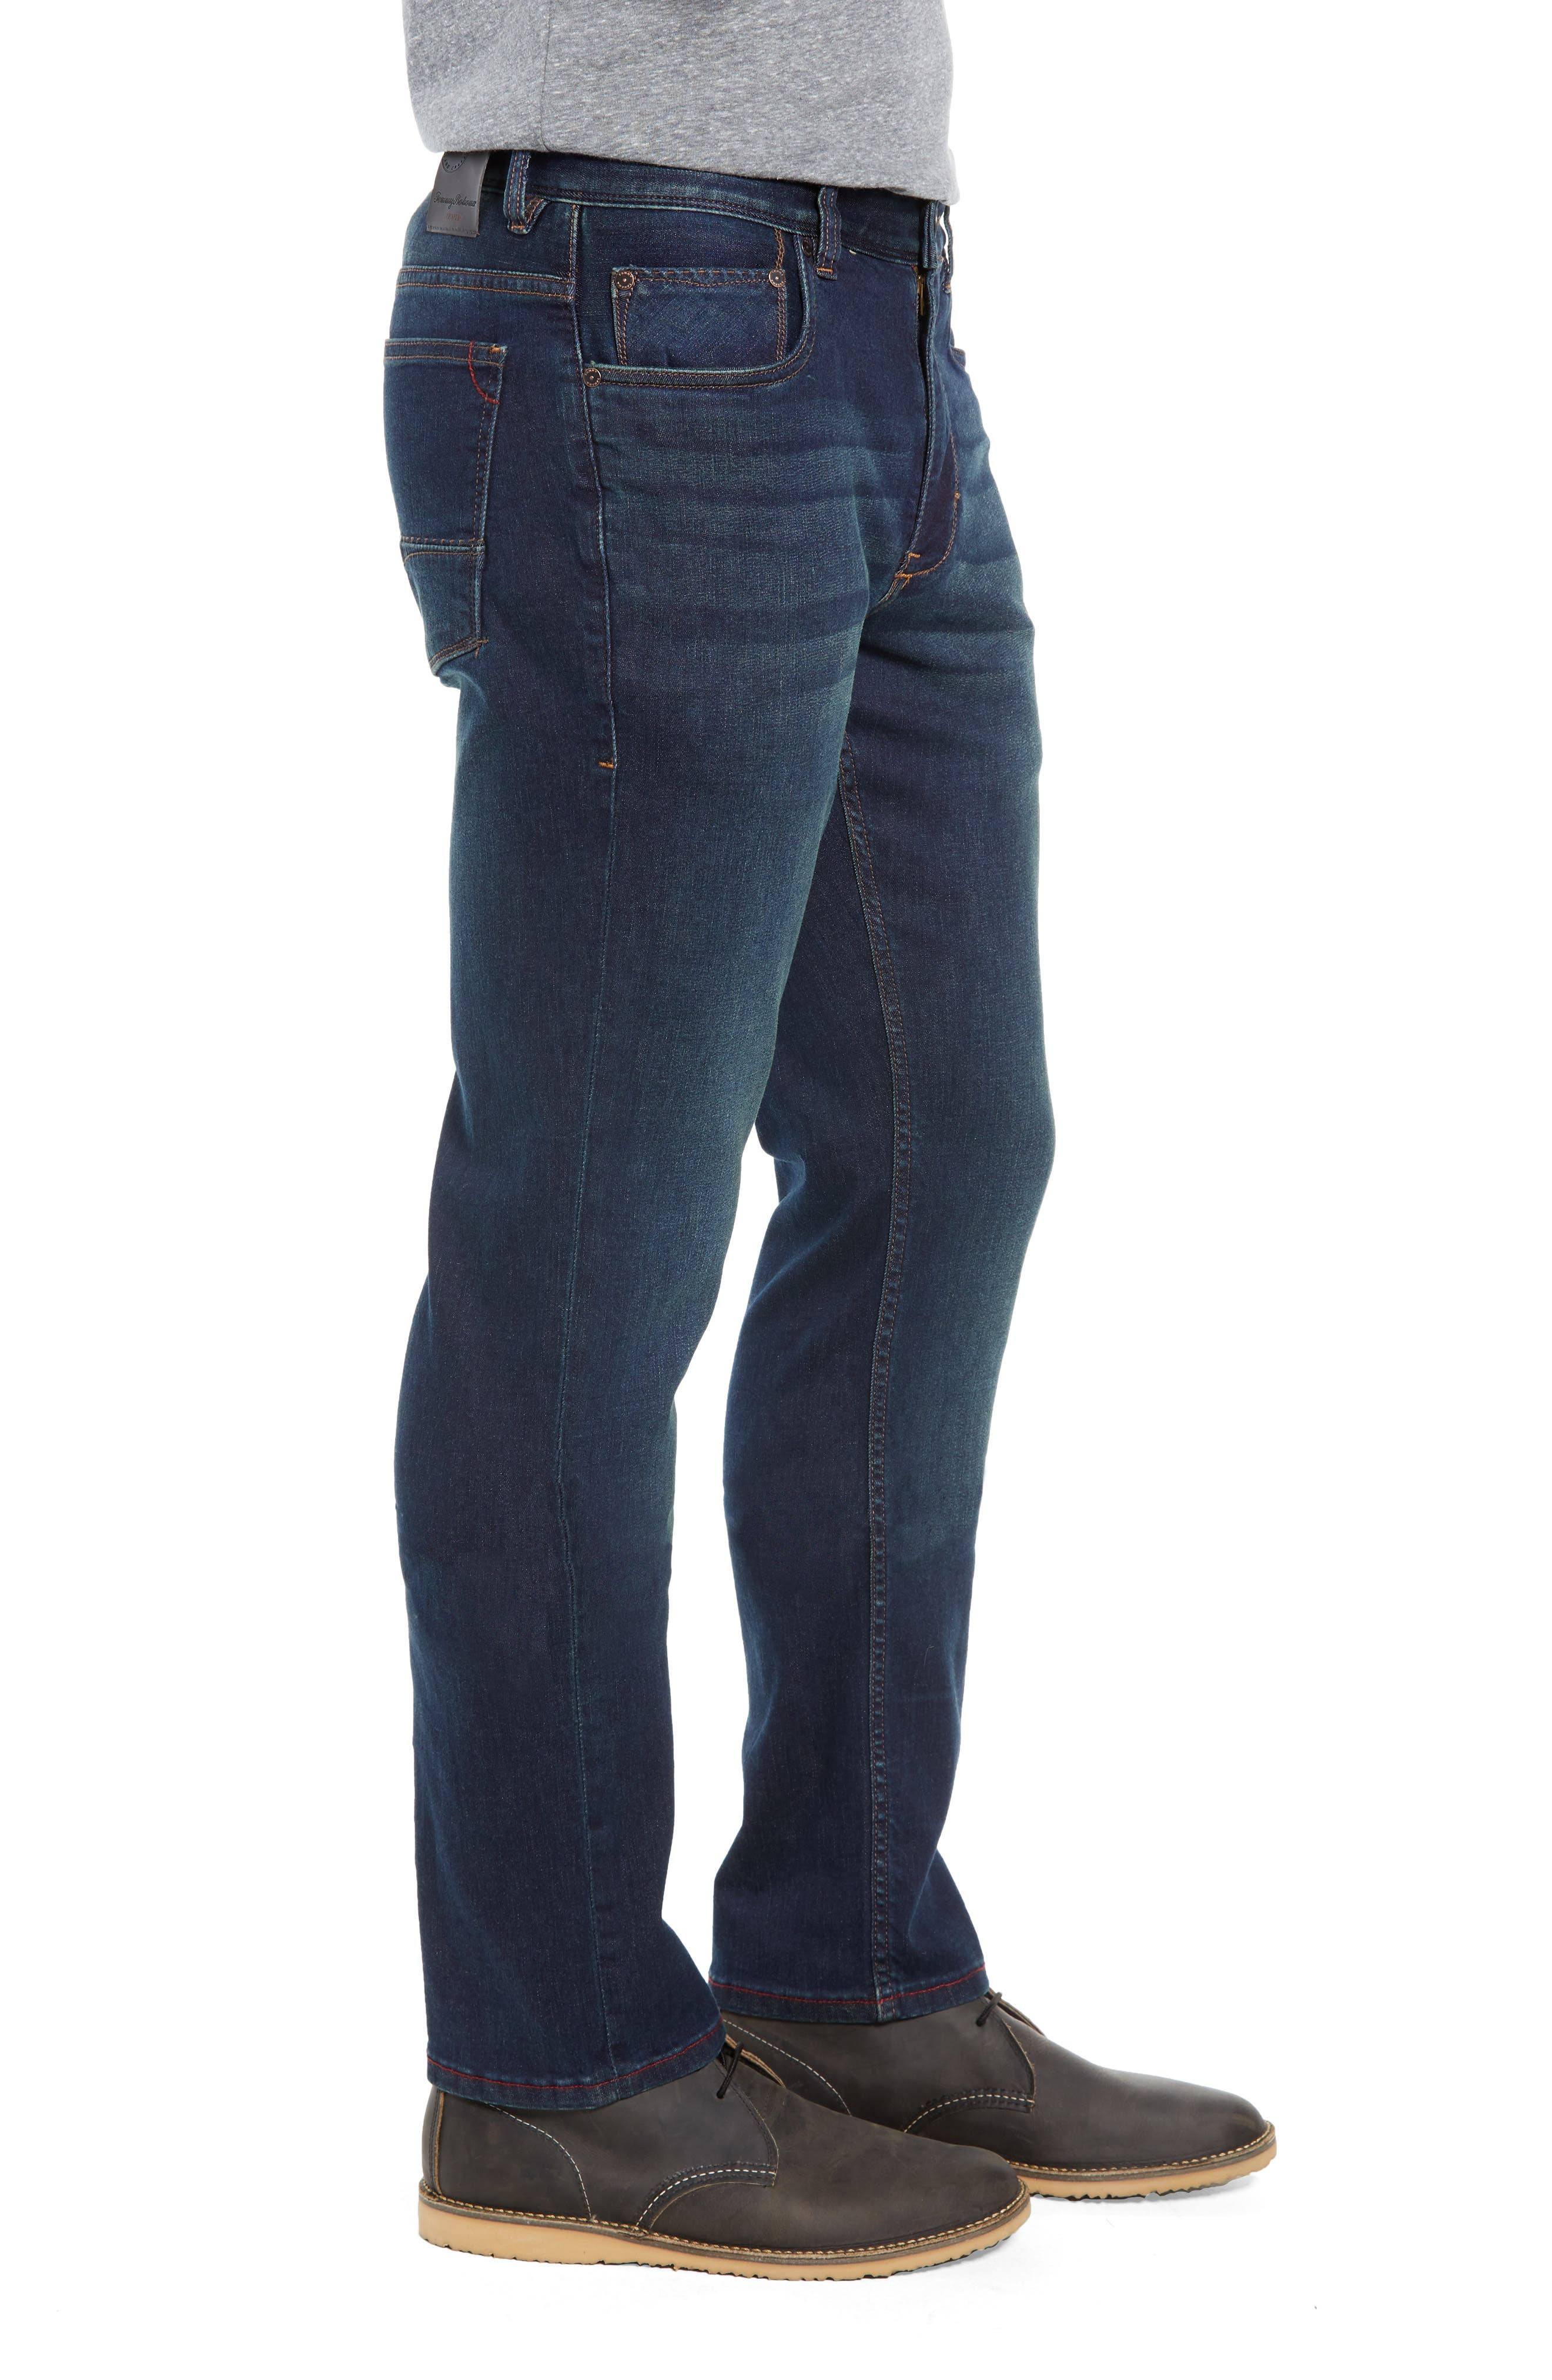 Costa Rica Vintage Regular Fit Jeans,                             Alternate thumbnail 3, color,                             RINSE WASH